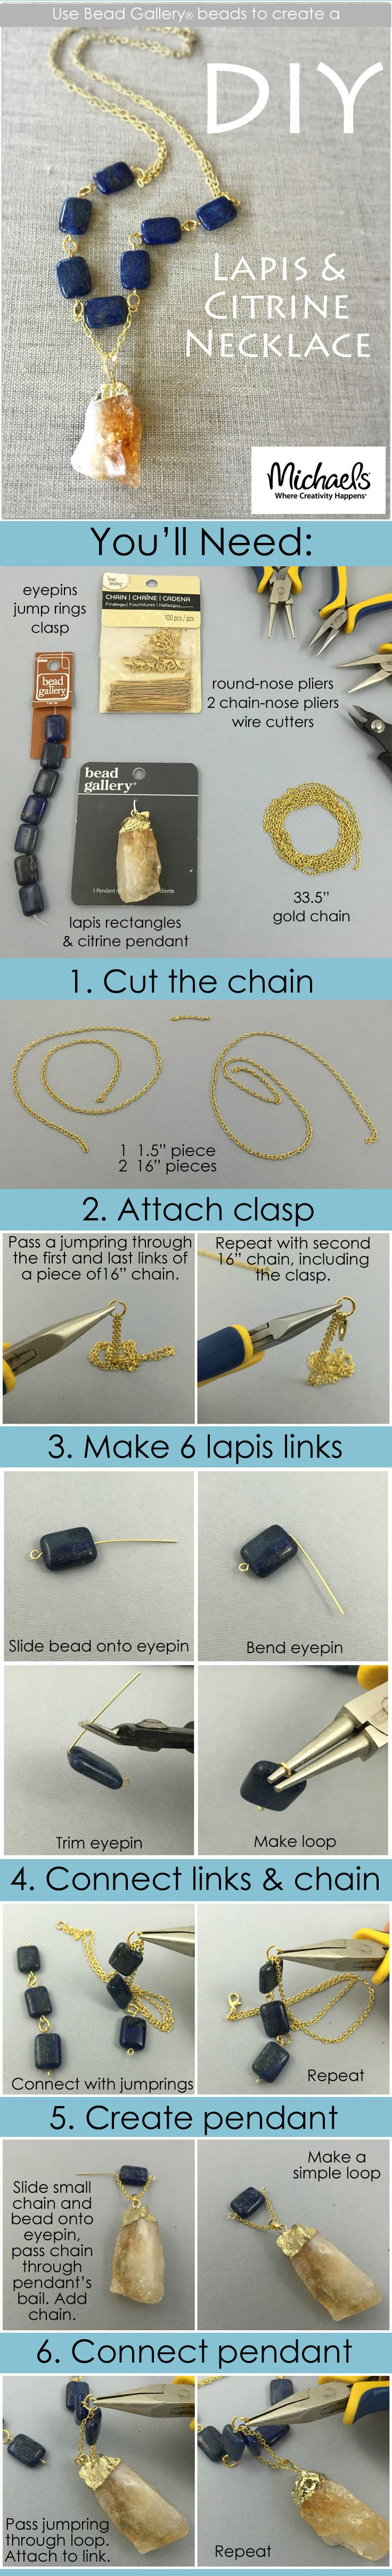 Use Bead Gallery beads available at your local Michaels Store to create this DIY Lapis & Citrine Necklace